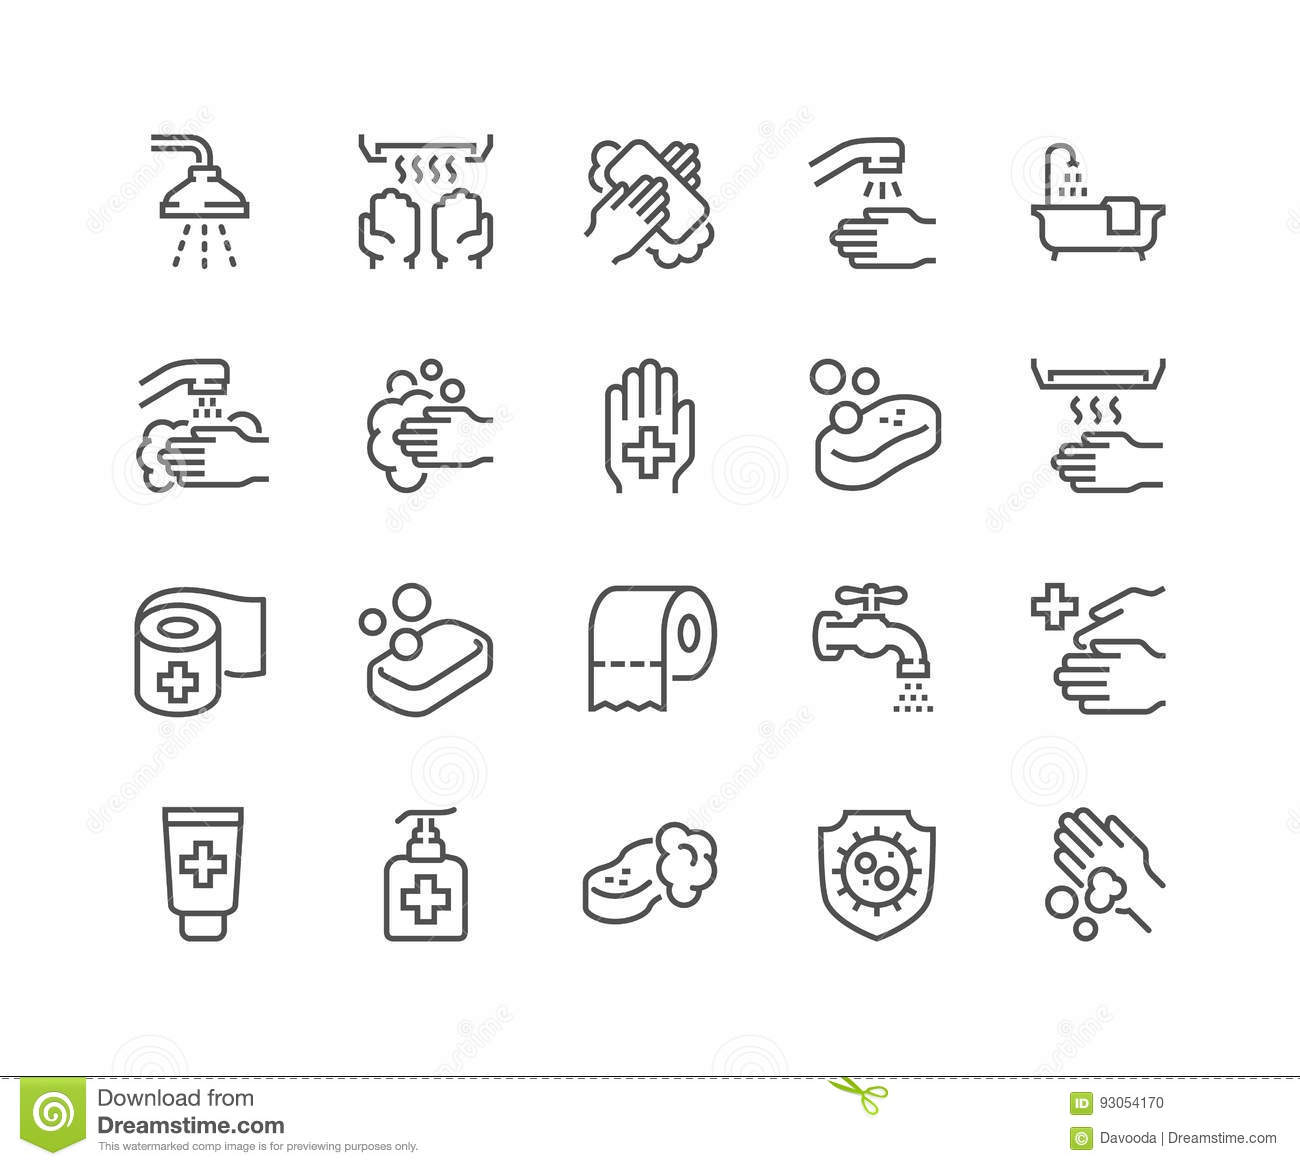 hight resolution of tooth icon stock photos auto electrical wiring diagram easy origami dragon diagram hhnofked